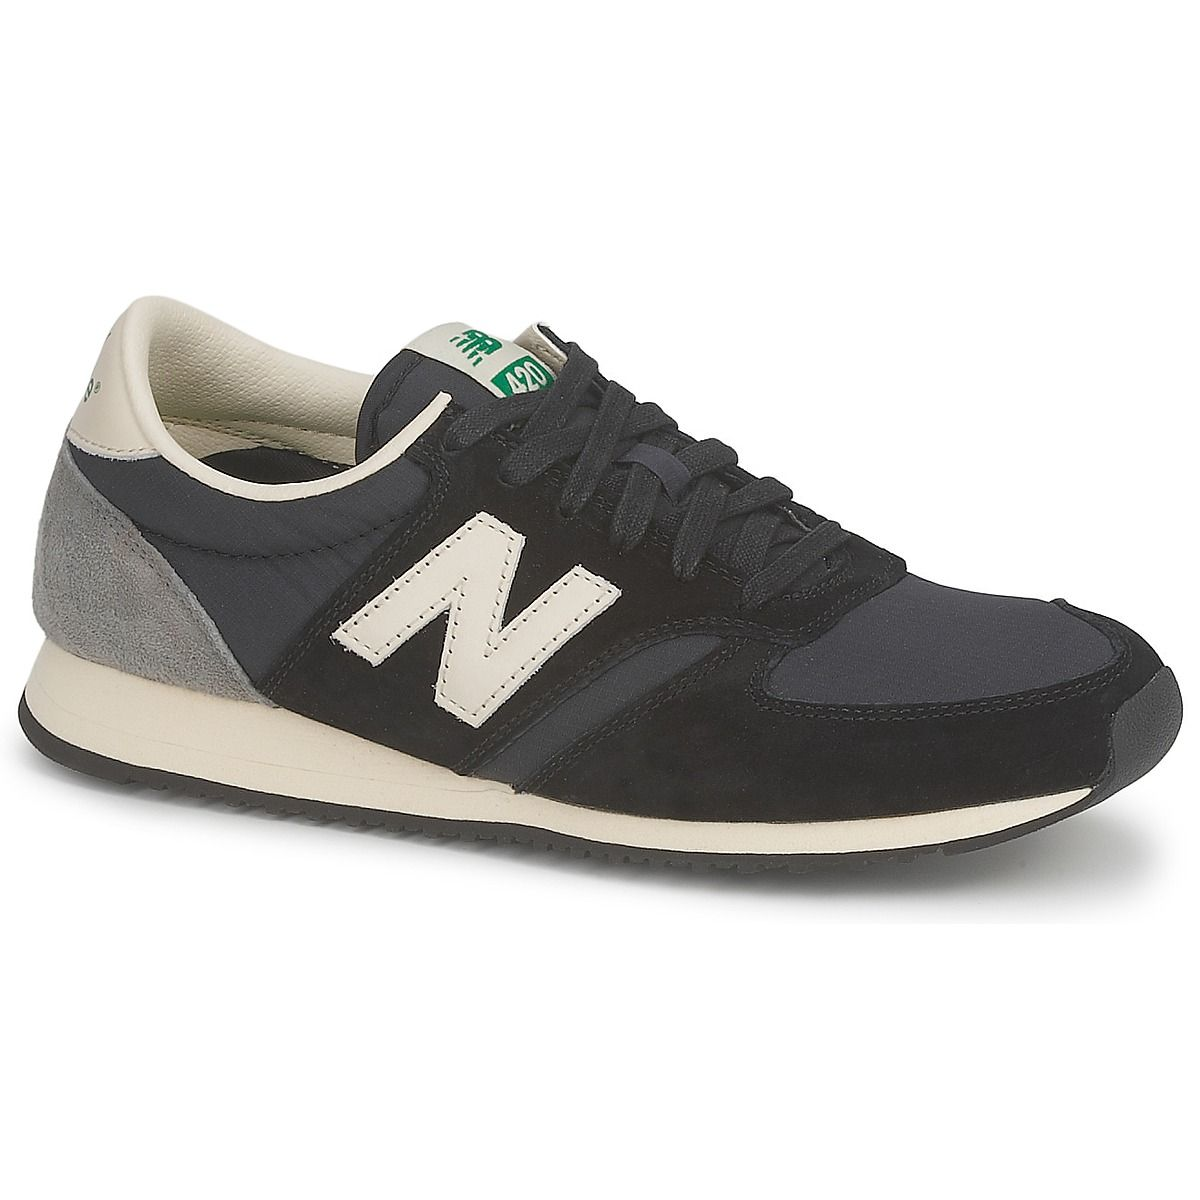 Explore New Balance 420 Black, Php and more!